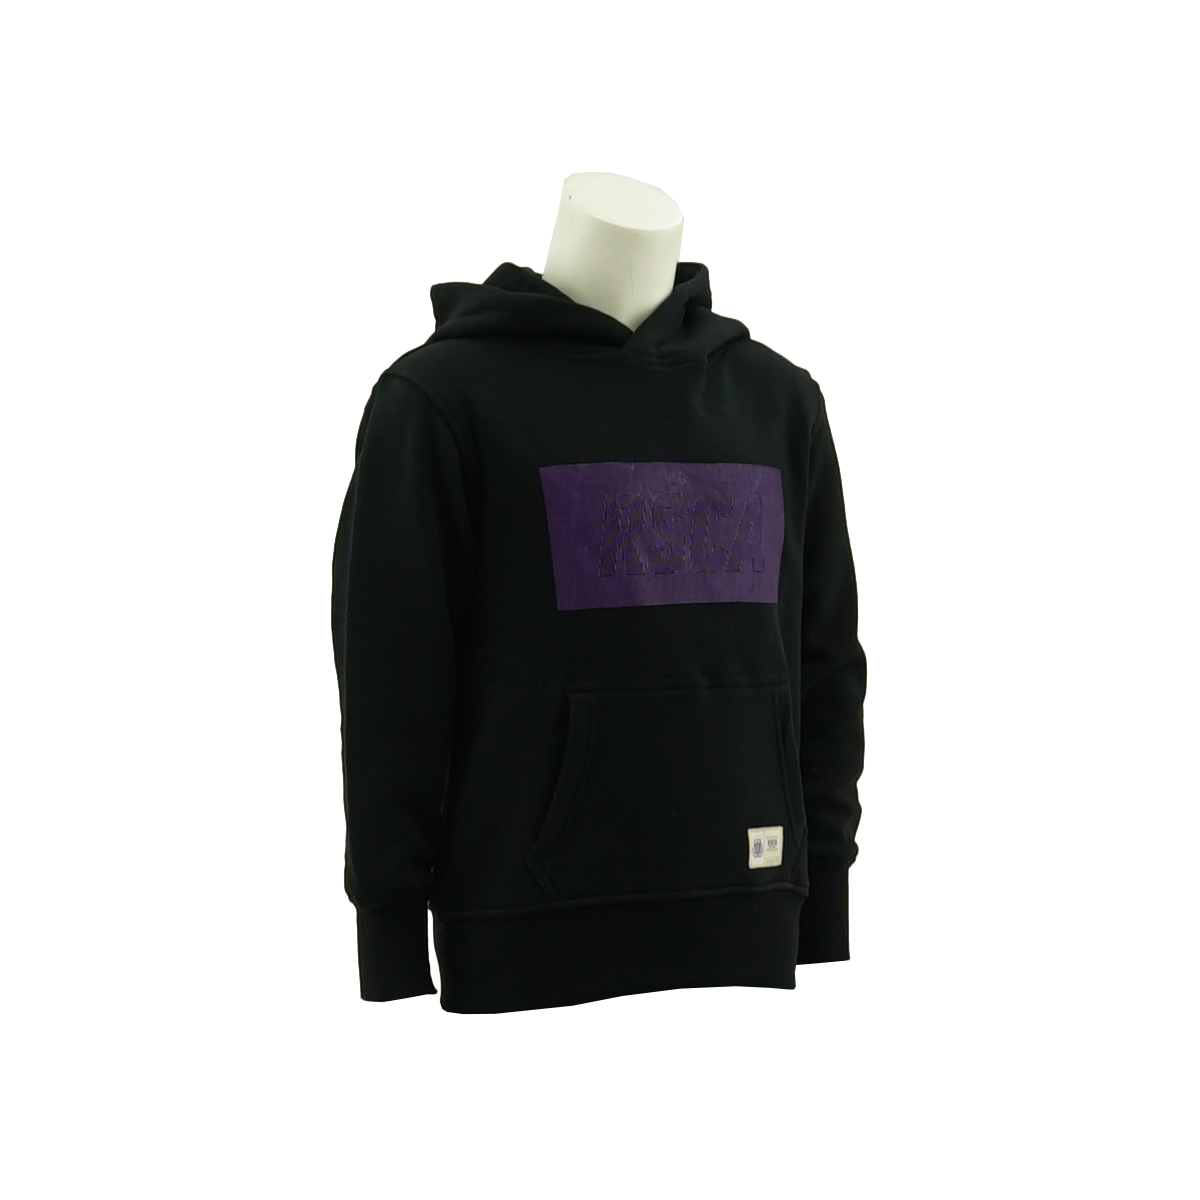 RSCA Sweater Met Kap Kids Dual Level Print